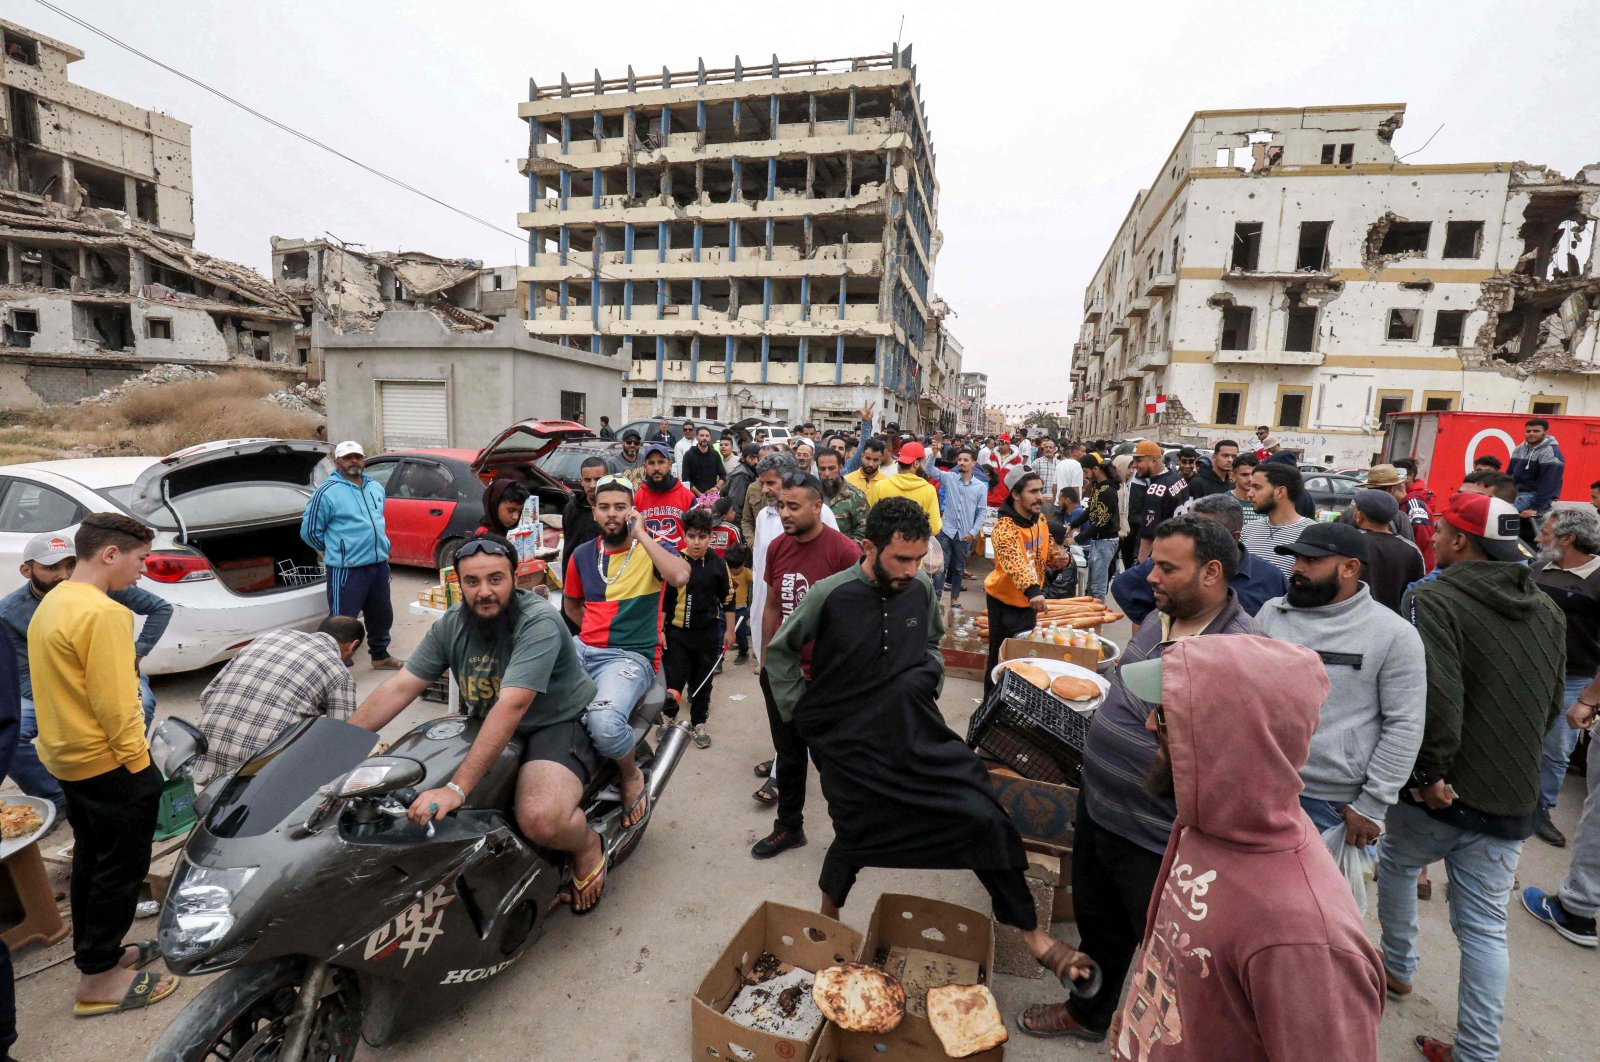 People shop at the Suq al-Hout (Whale Market) district during the Muslim holy month of Ramadan in the eastern city of Benghazi, Libya, on April 18, 2021. (Photo by Abdullah DOMA / AFP)